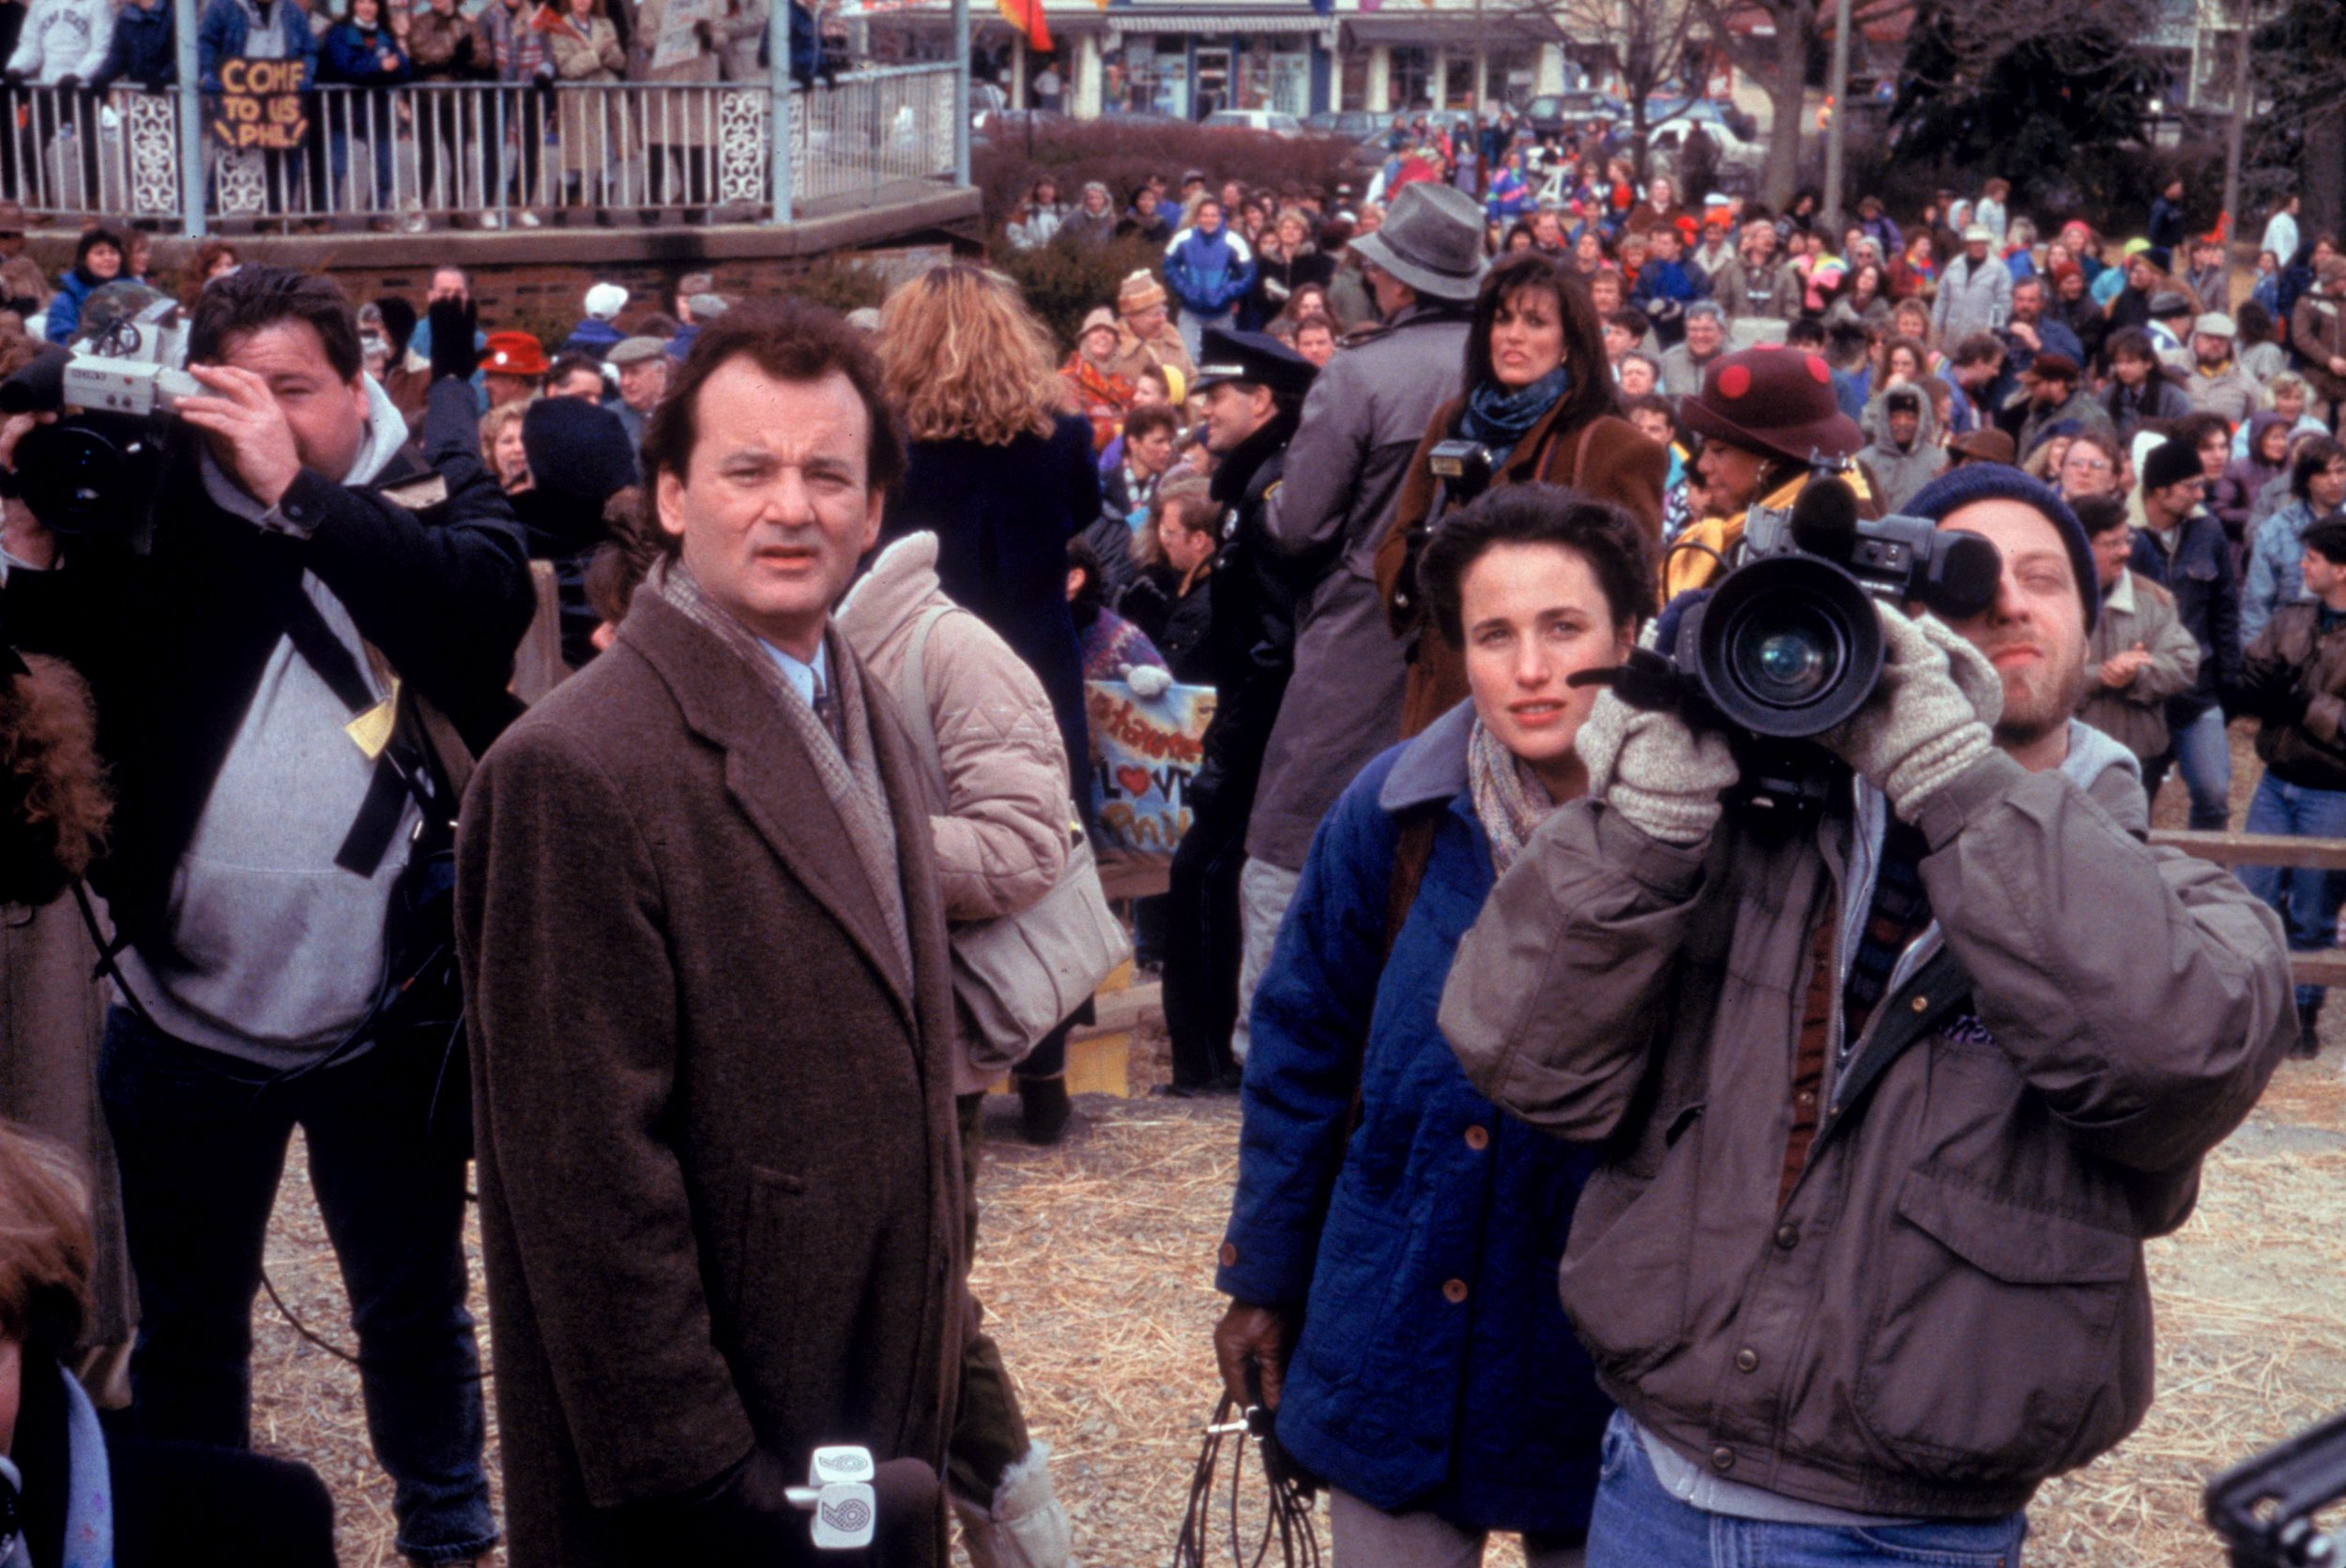 Editorial use only. No book cover usage. Mandatory Credit: Photo by Columbia/Kobal/REX/Shutterstock (5883080s) Bill Murray, Andie Macdowell, Chris Elliott Groundhog Day - 1993 Director: Harold Ramis Columbia Pictures USA Scene Still Comedy Un jour sans fin